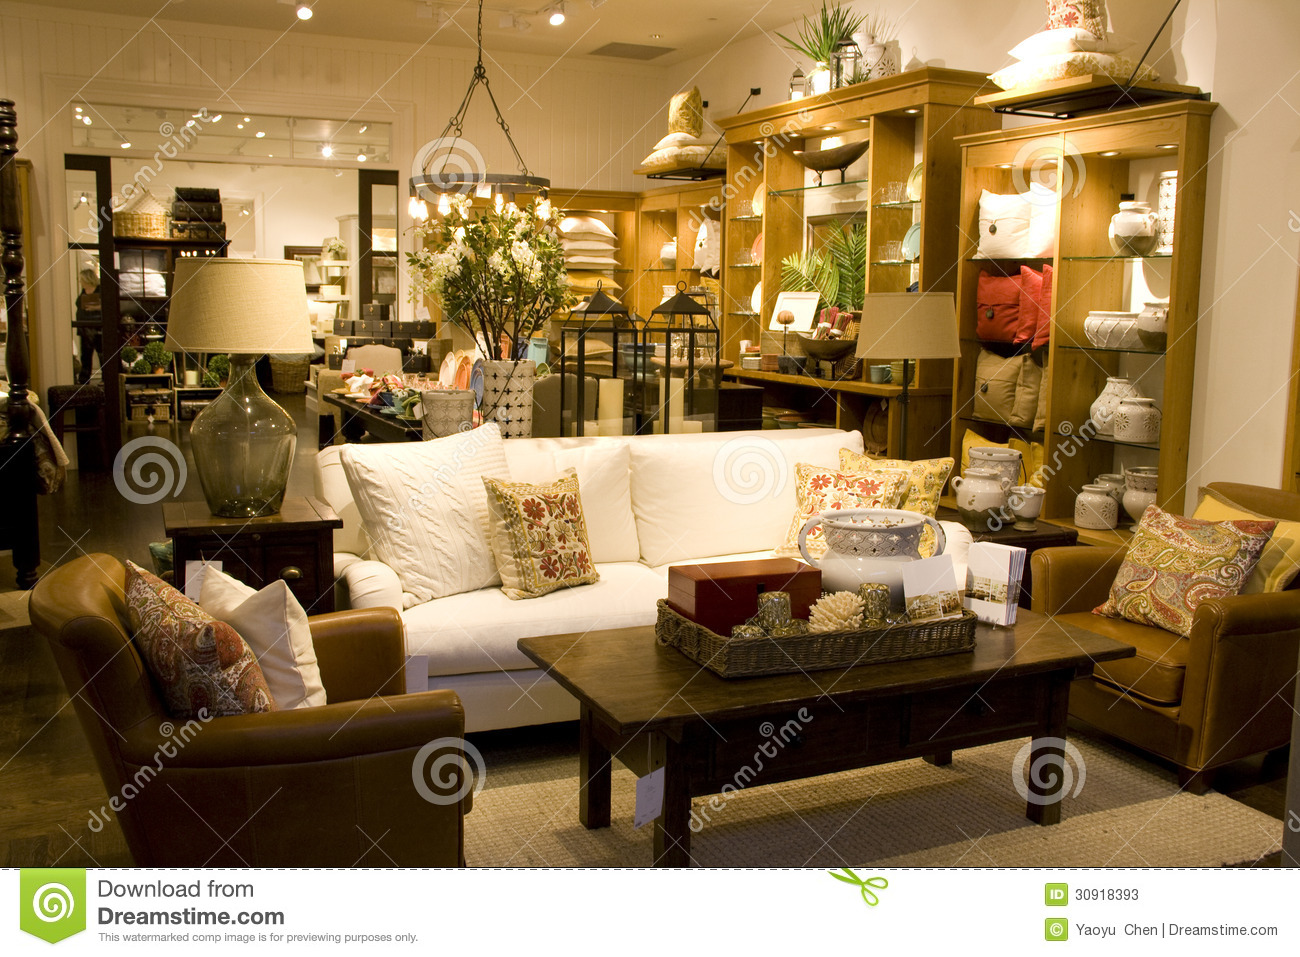 Furniture and home decor store stock photos image 30918393 for Furniture and design stores